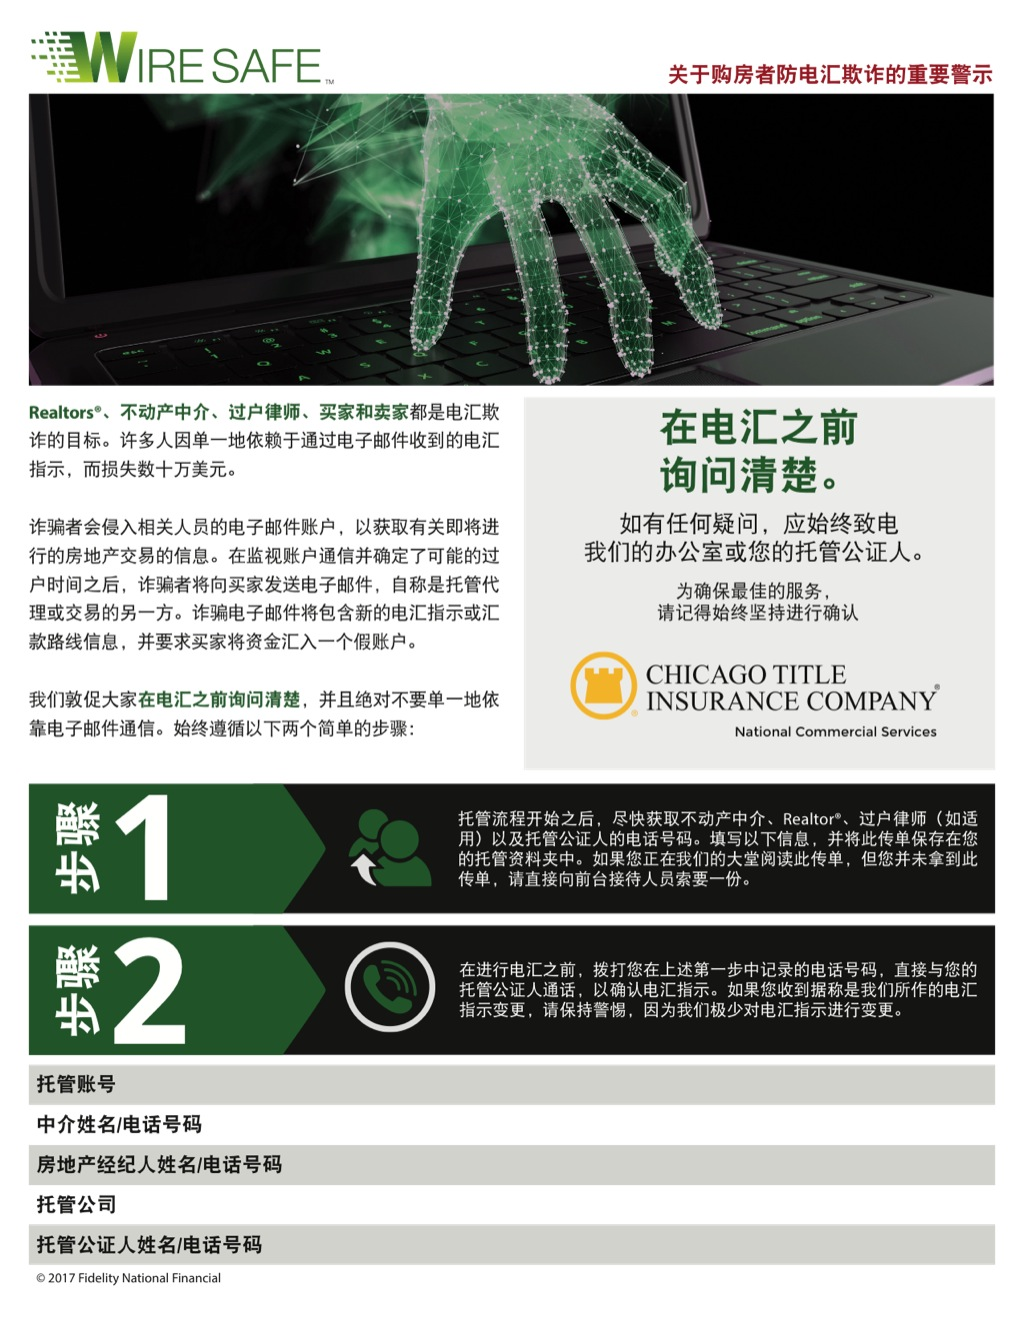 Corefact Wire Safe Buyer Flyer - Chinese - CTIC NCS